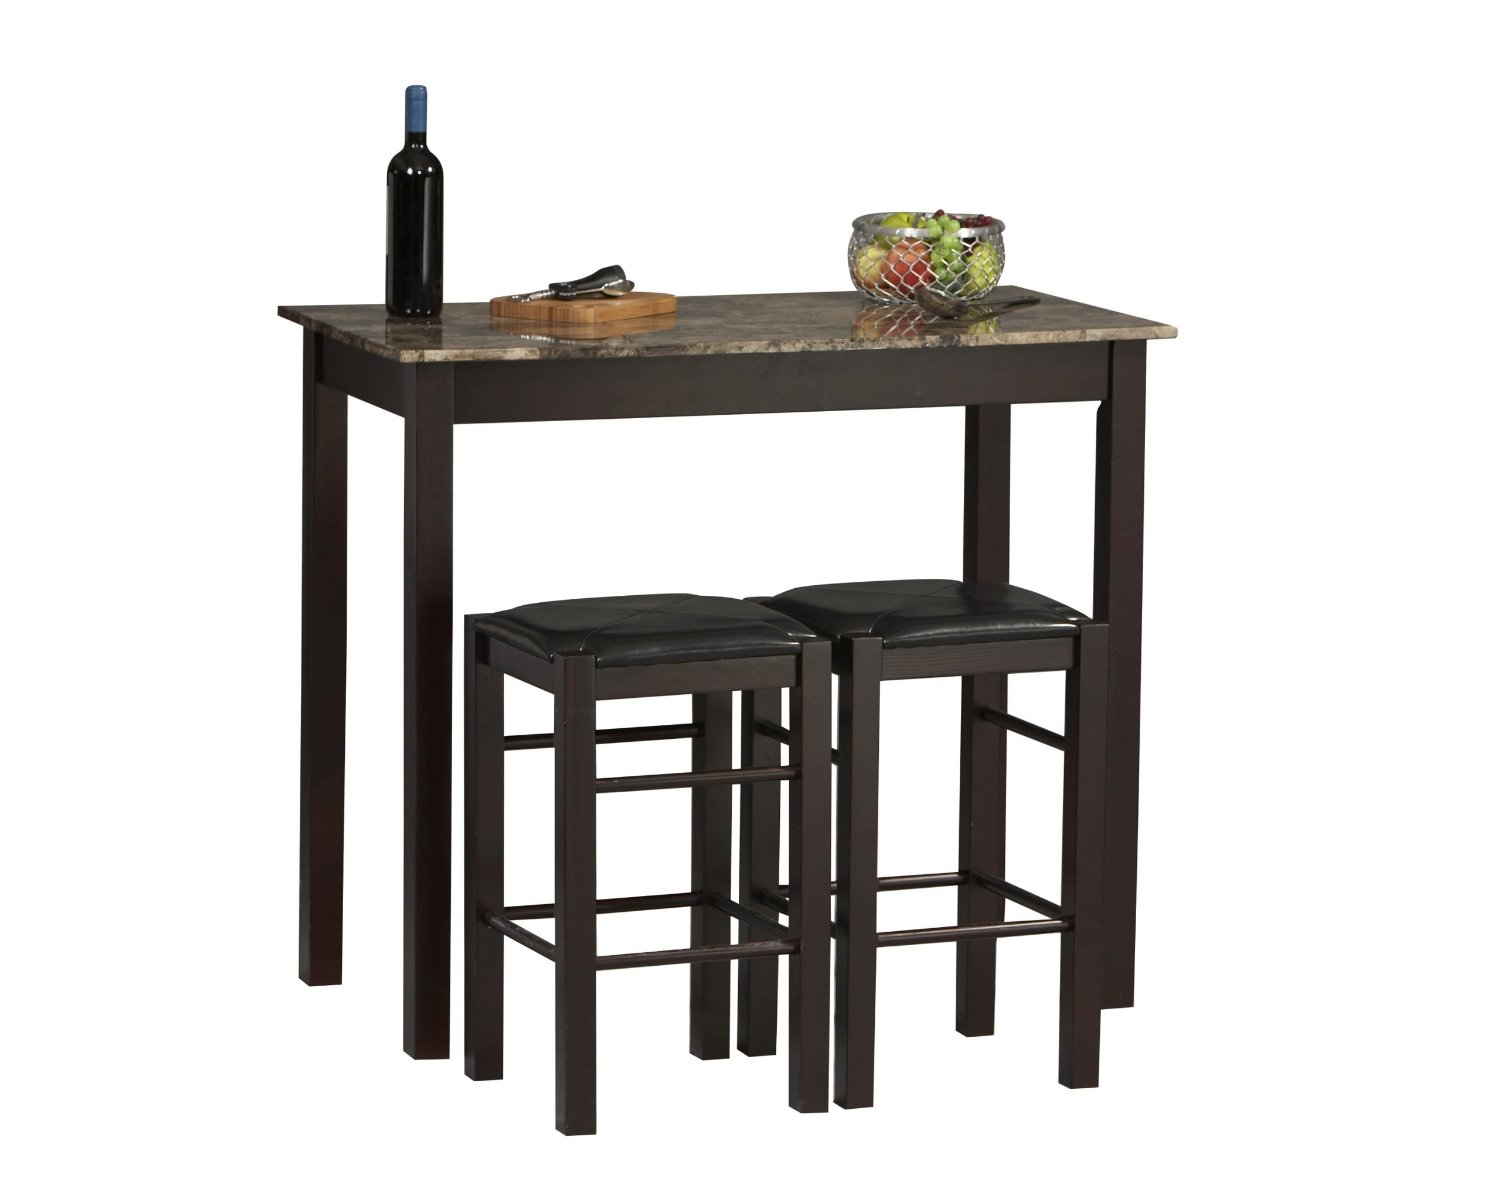 What Is Counter Height And What Is Bar Height